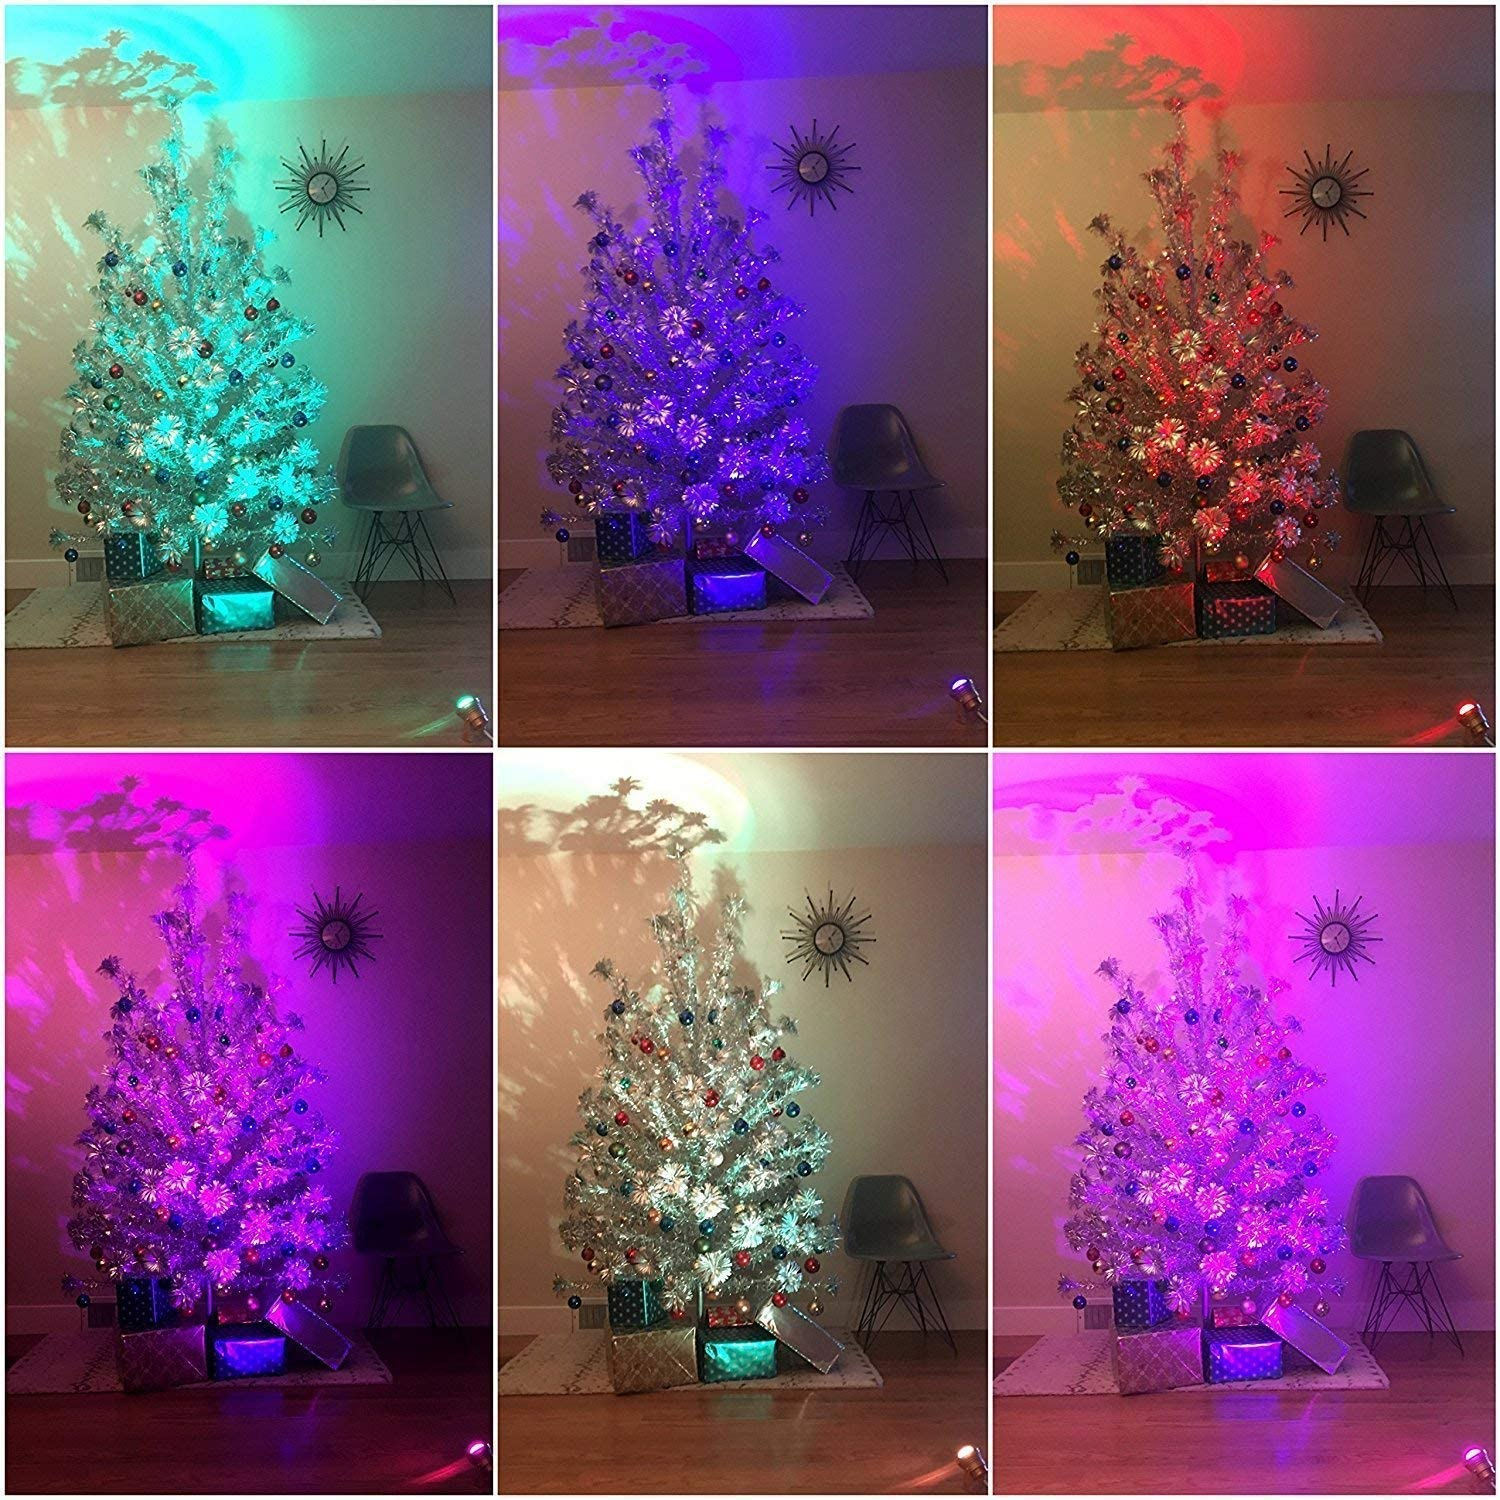 TreeTronics Color Wheel 2 0 – for Vintage Aluminum Christmas Trees Mid Century Modern – Artificial Retro Silver MCM Xmas